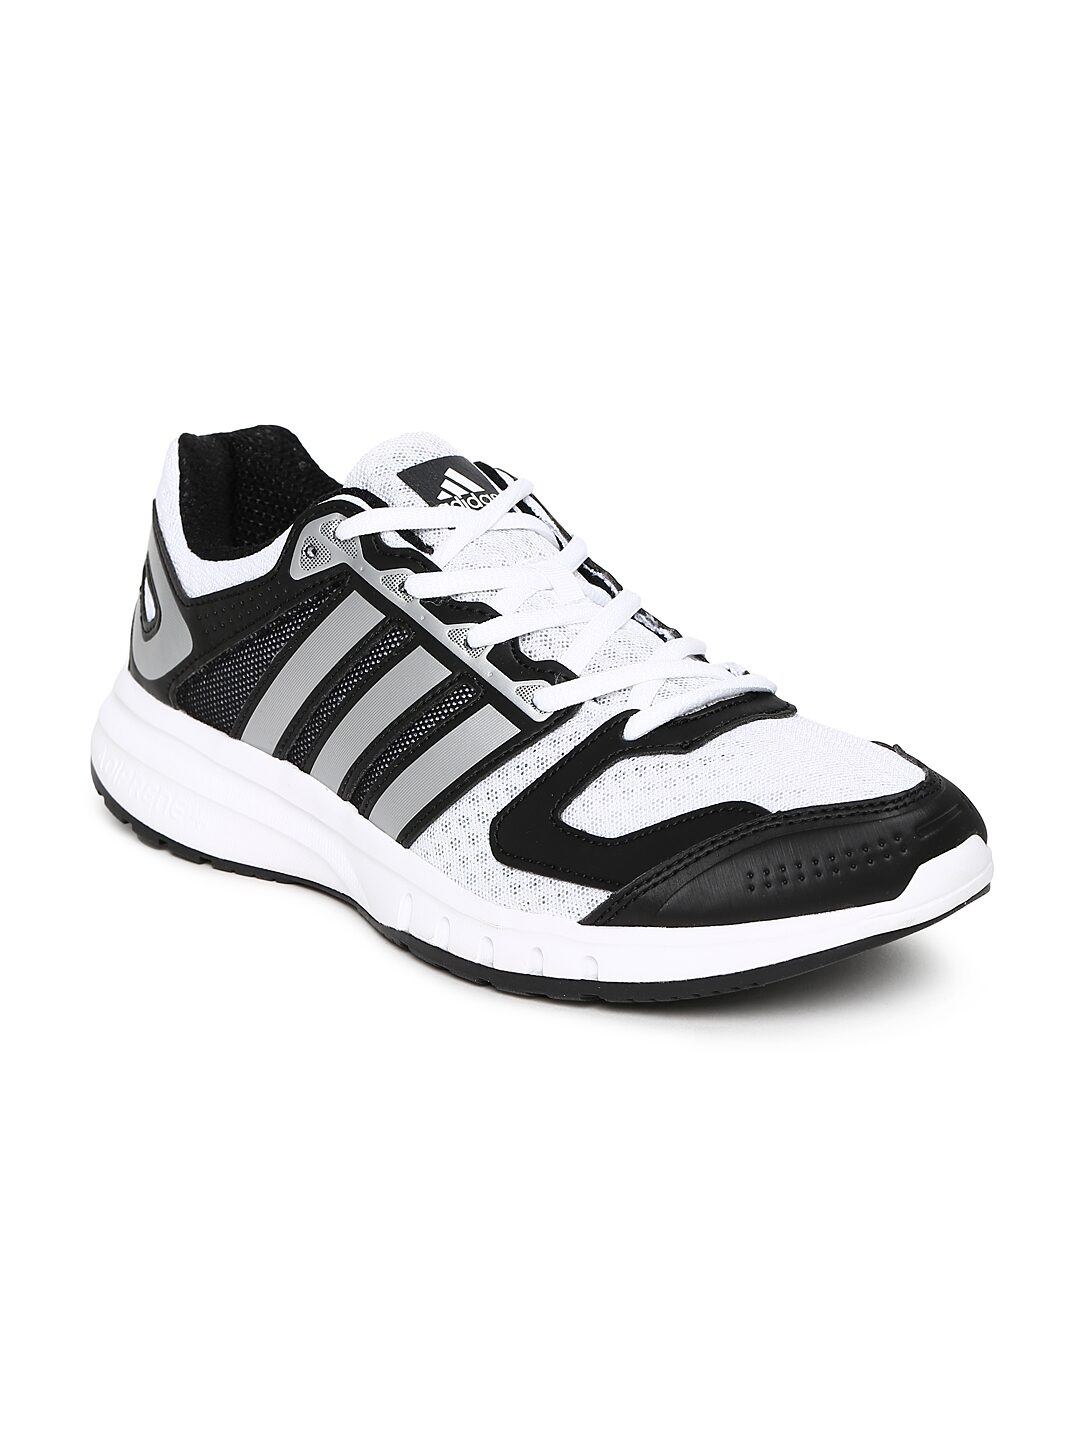 Adidas m18660 Men White Galaxy M Running Shoes - Best Price in ... 50c21b783